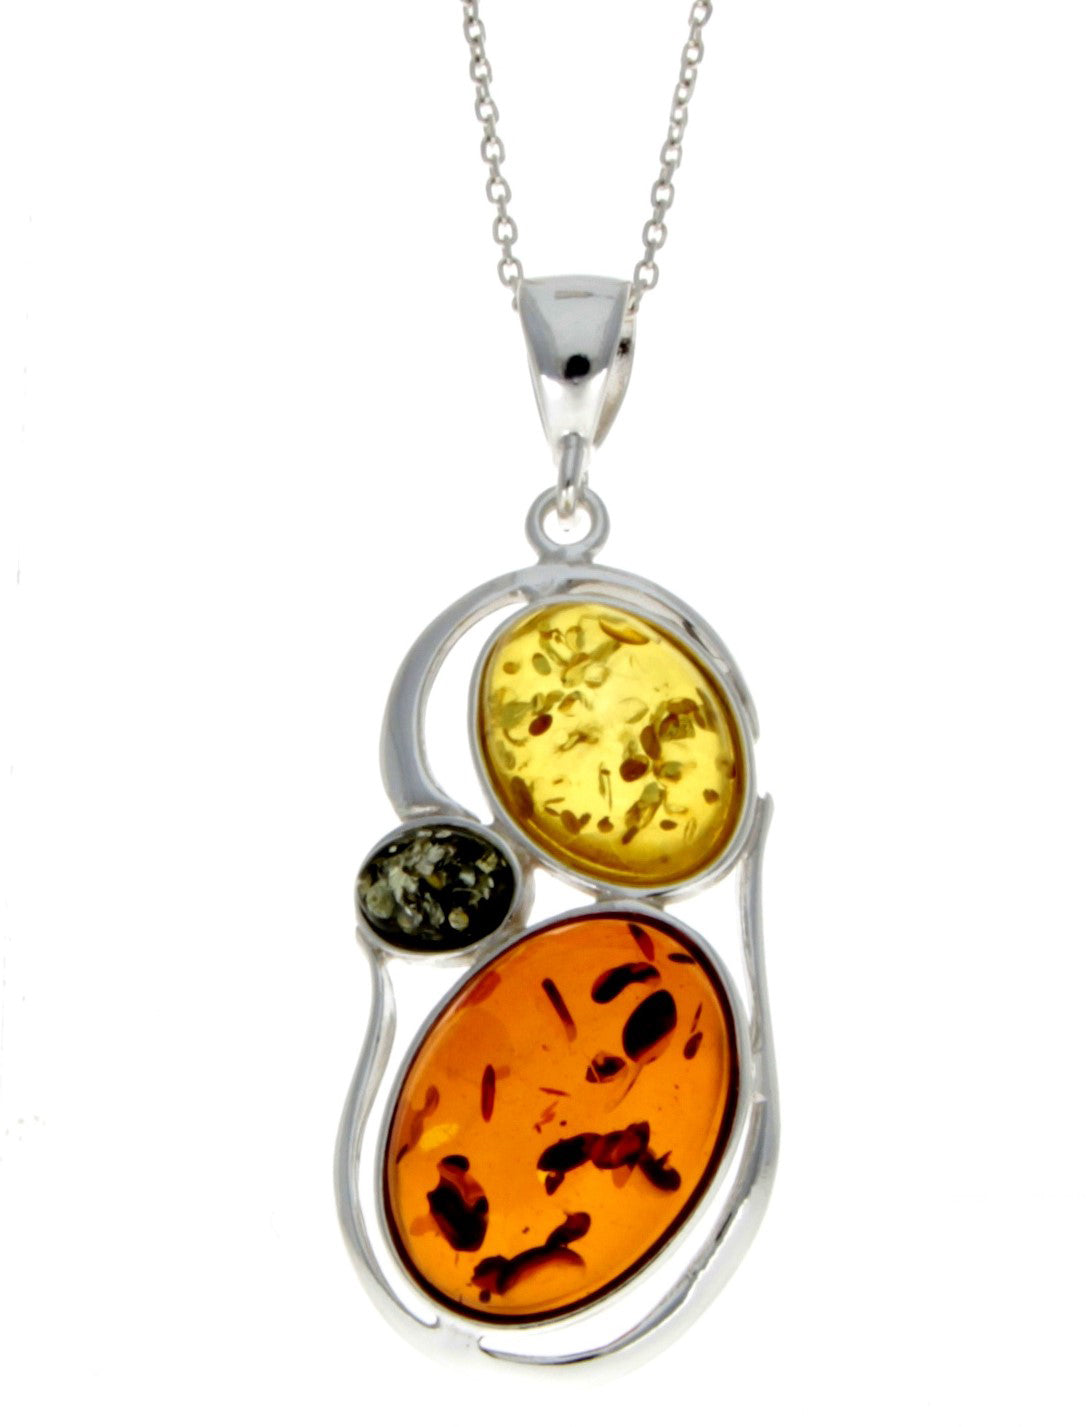 925 Sterling Silver & Baltic Amber 3 Stone Modern Pendant - M370